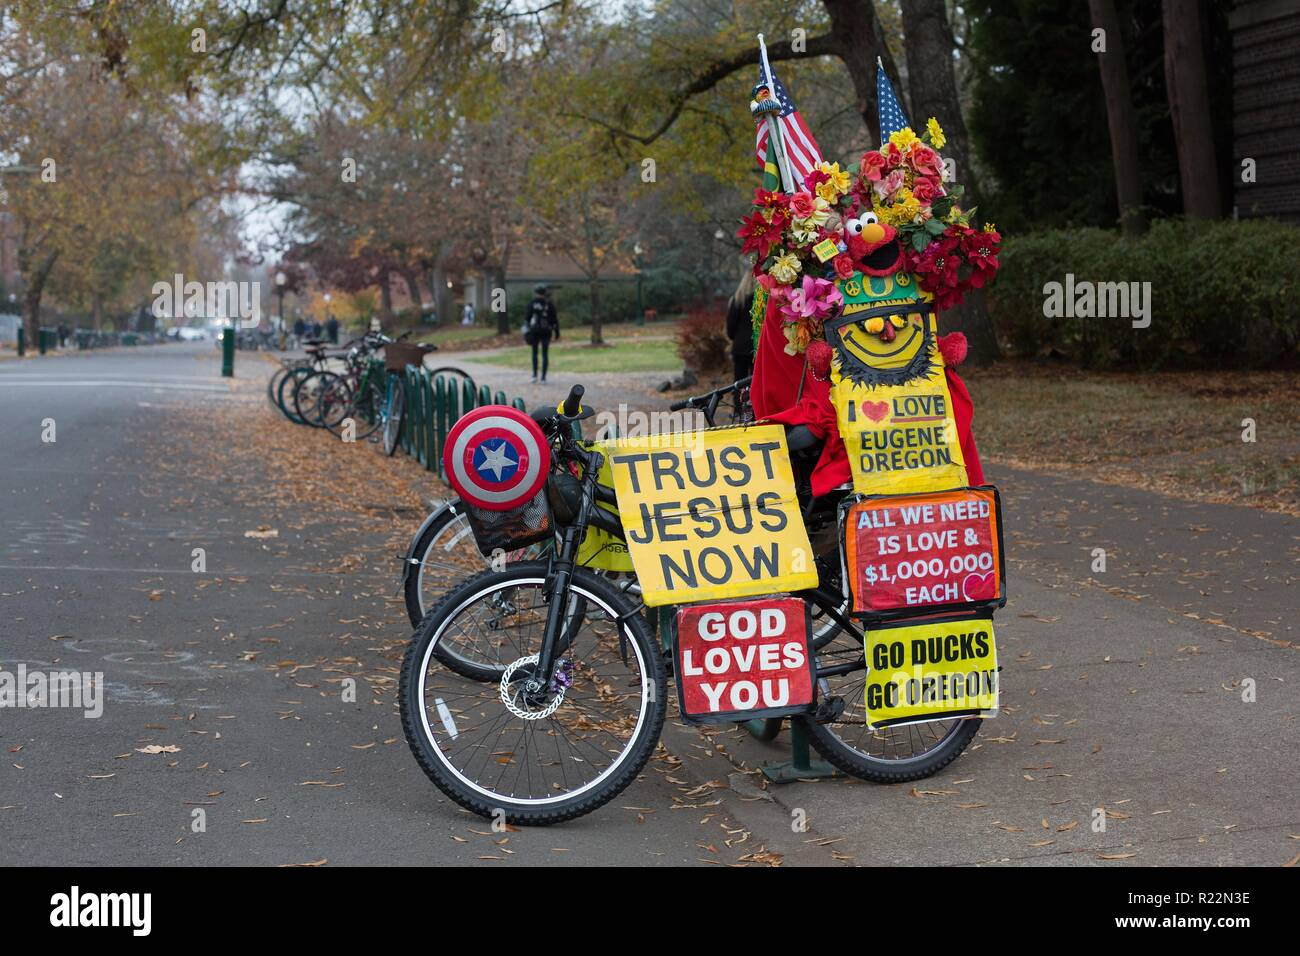 A bike decorated with religious and other slogans, at the University of Oregon in Eugene, OR, USA. - Stock Image